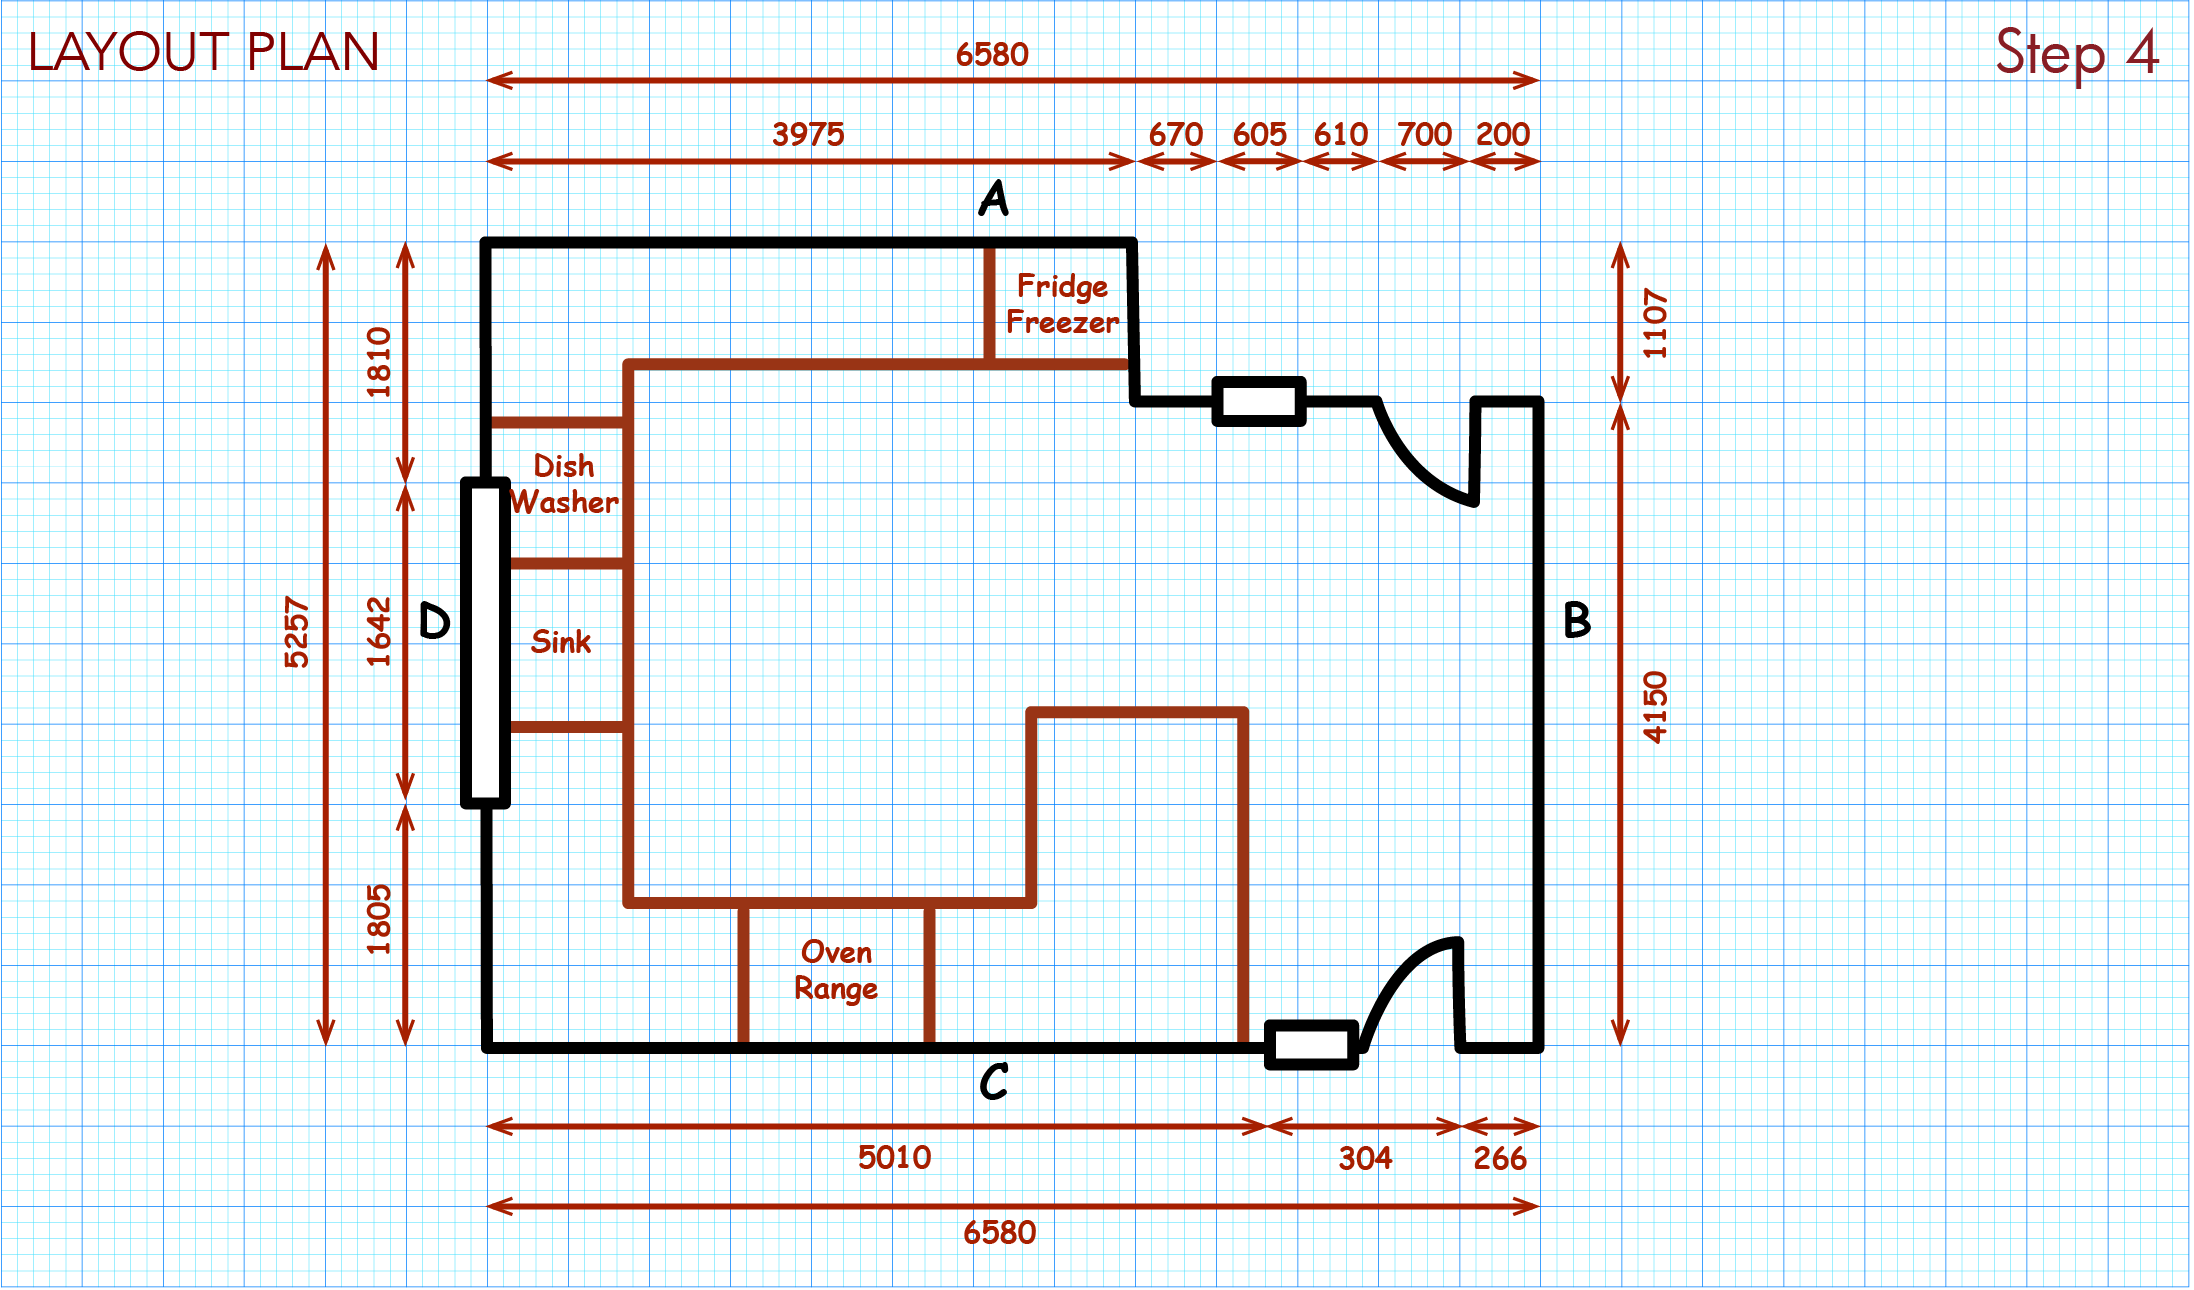 Draw design ideas on layout plan, such as locations of appliances